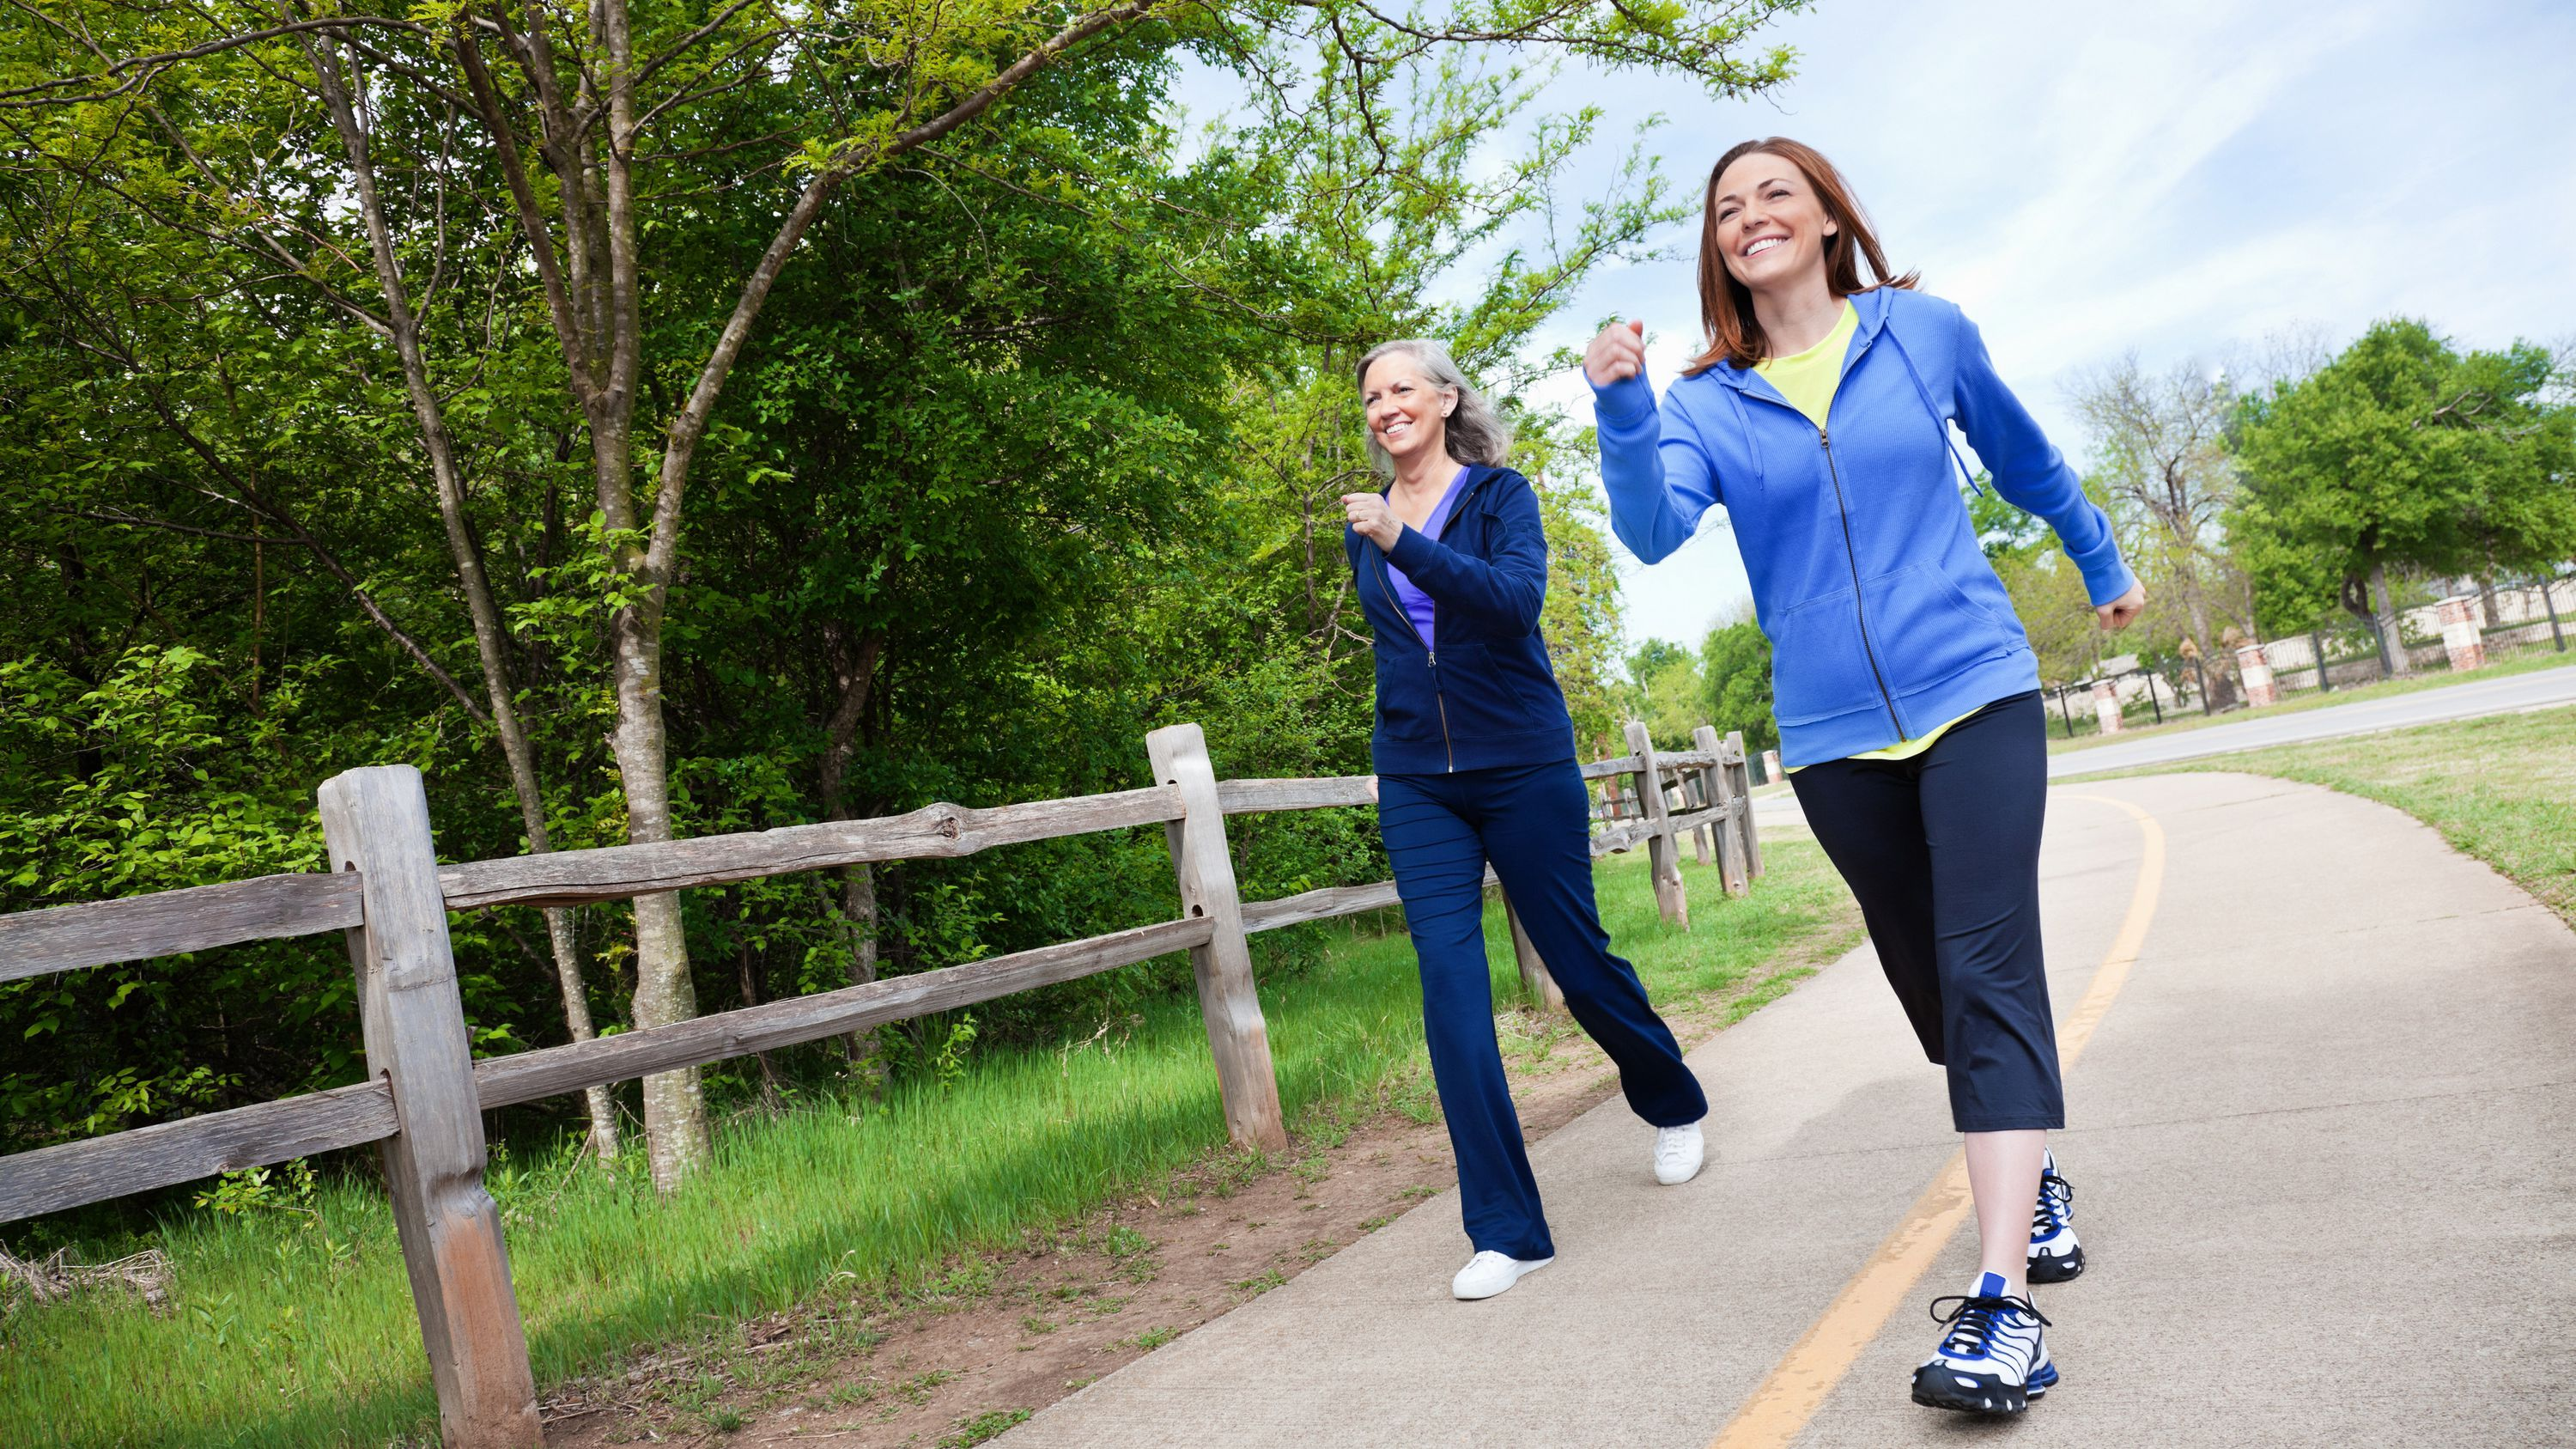 7 Benefits of Speed Walking